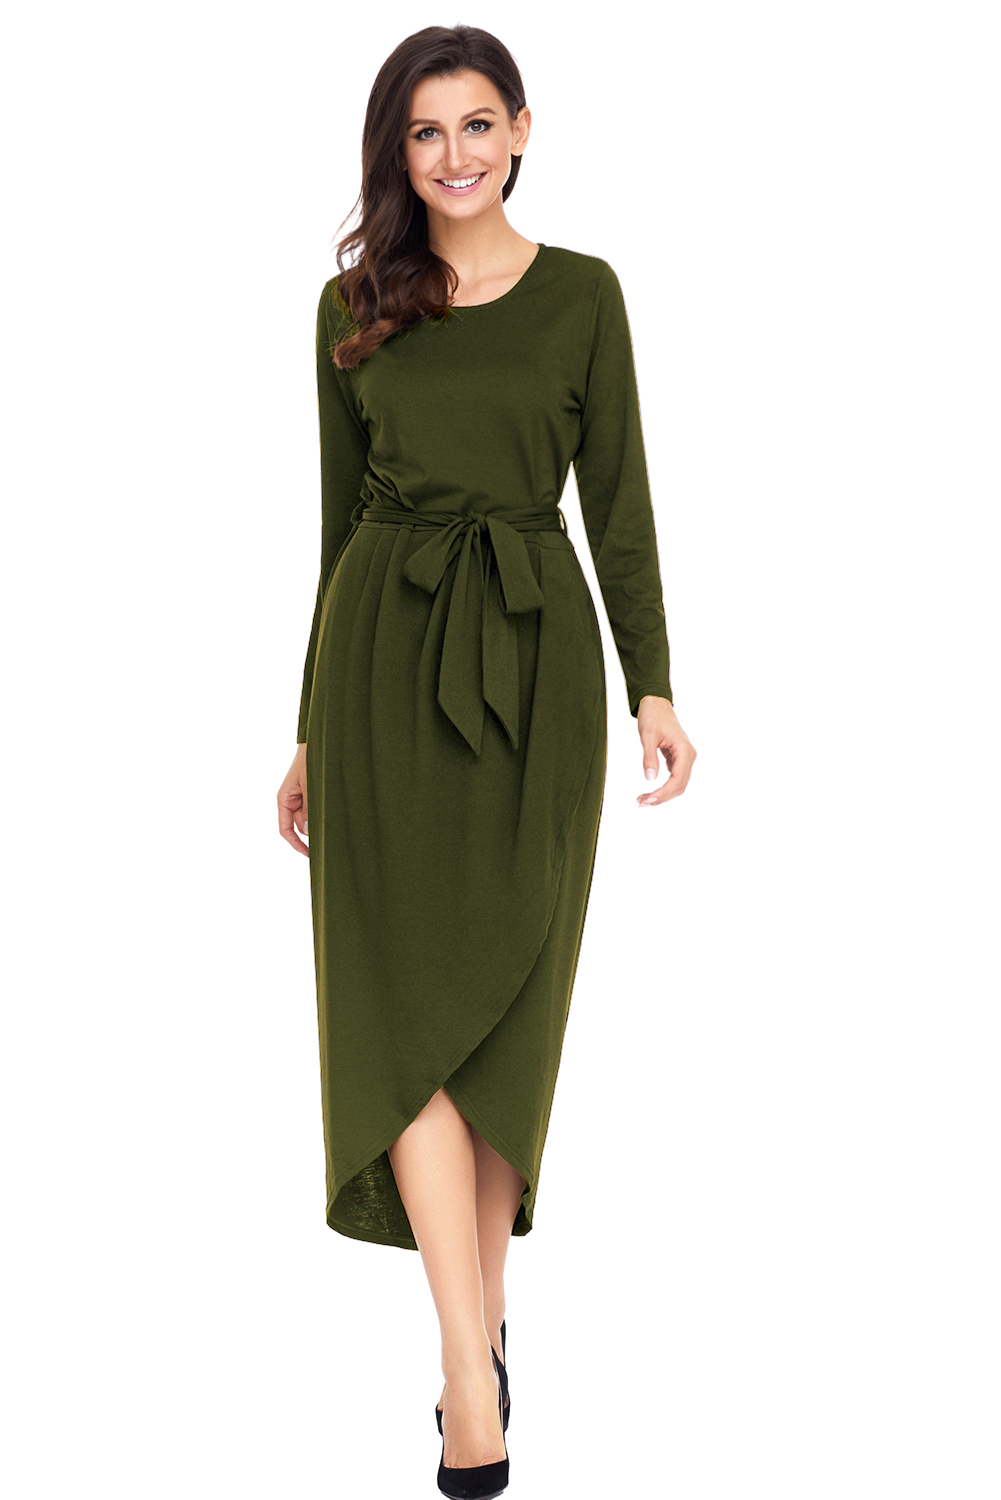 BY61818-9 Olive Tulip Faux Wrap Sash Tie Jersey Dress